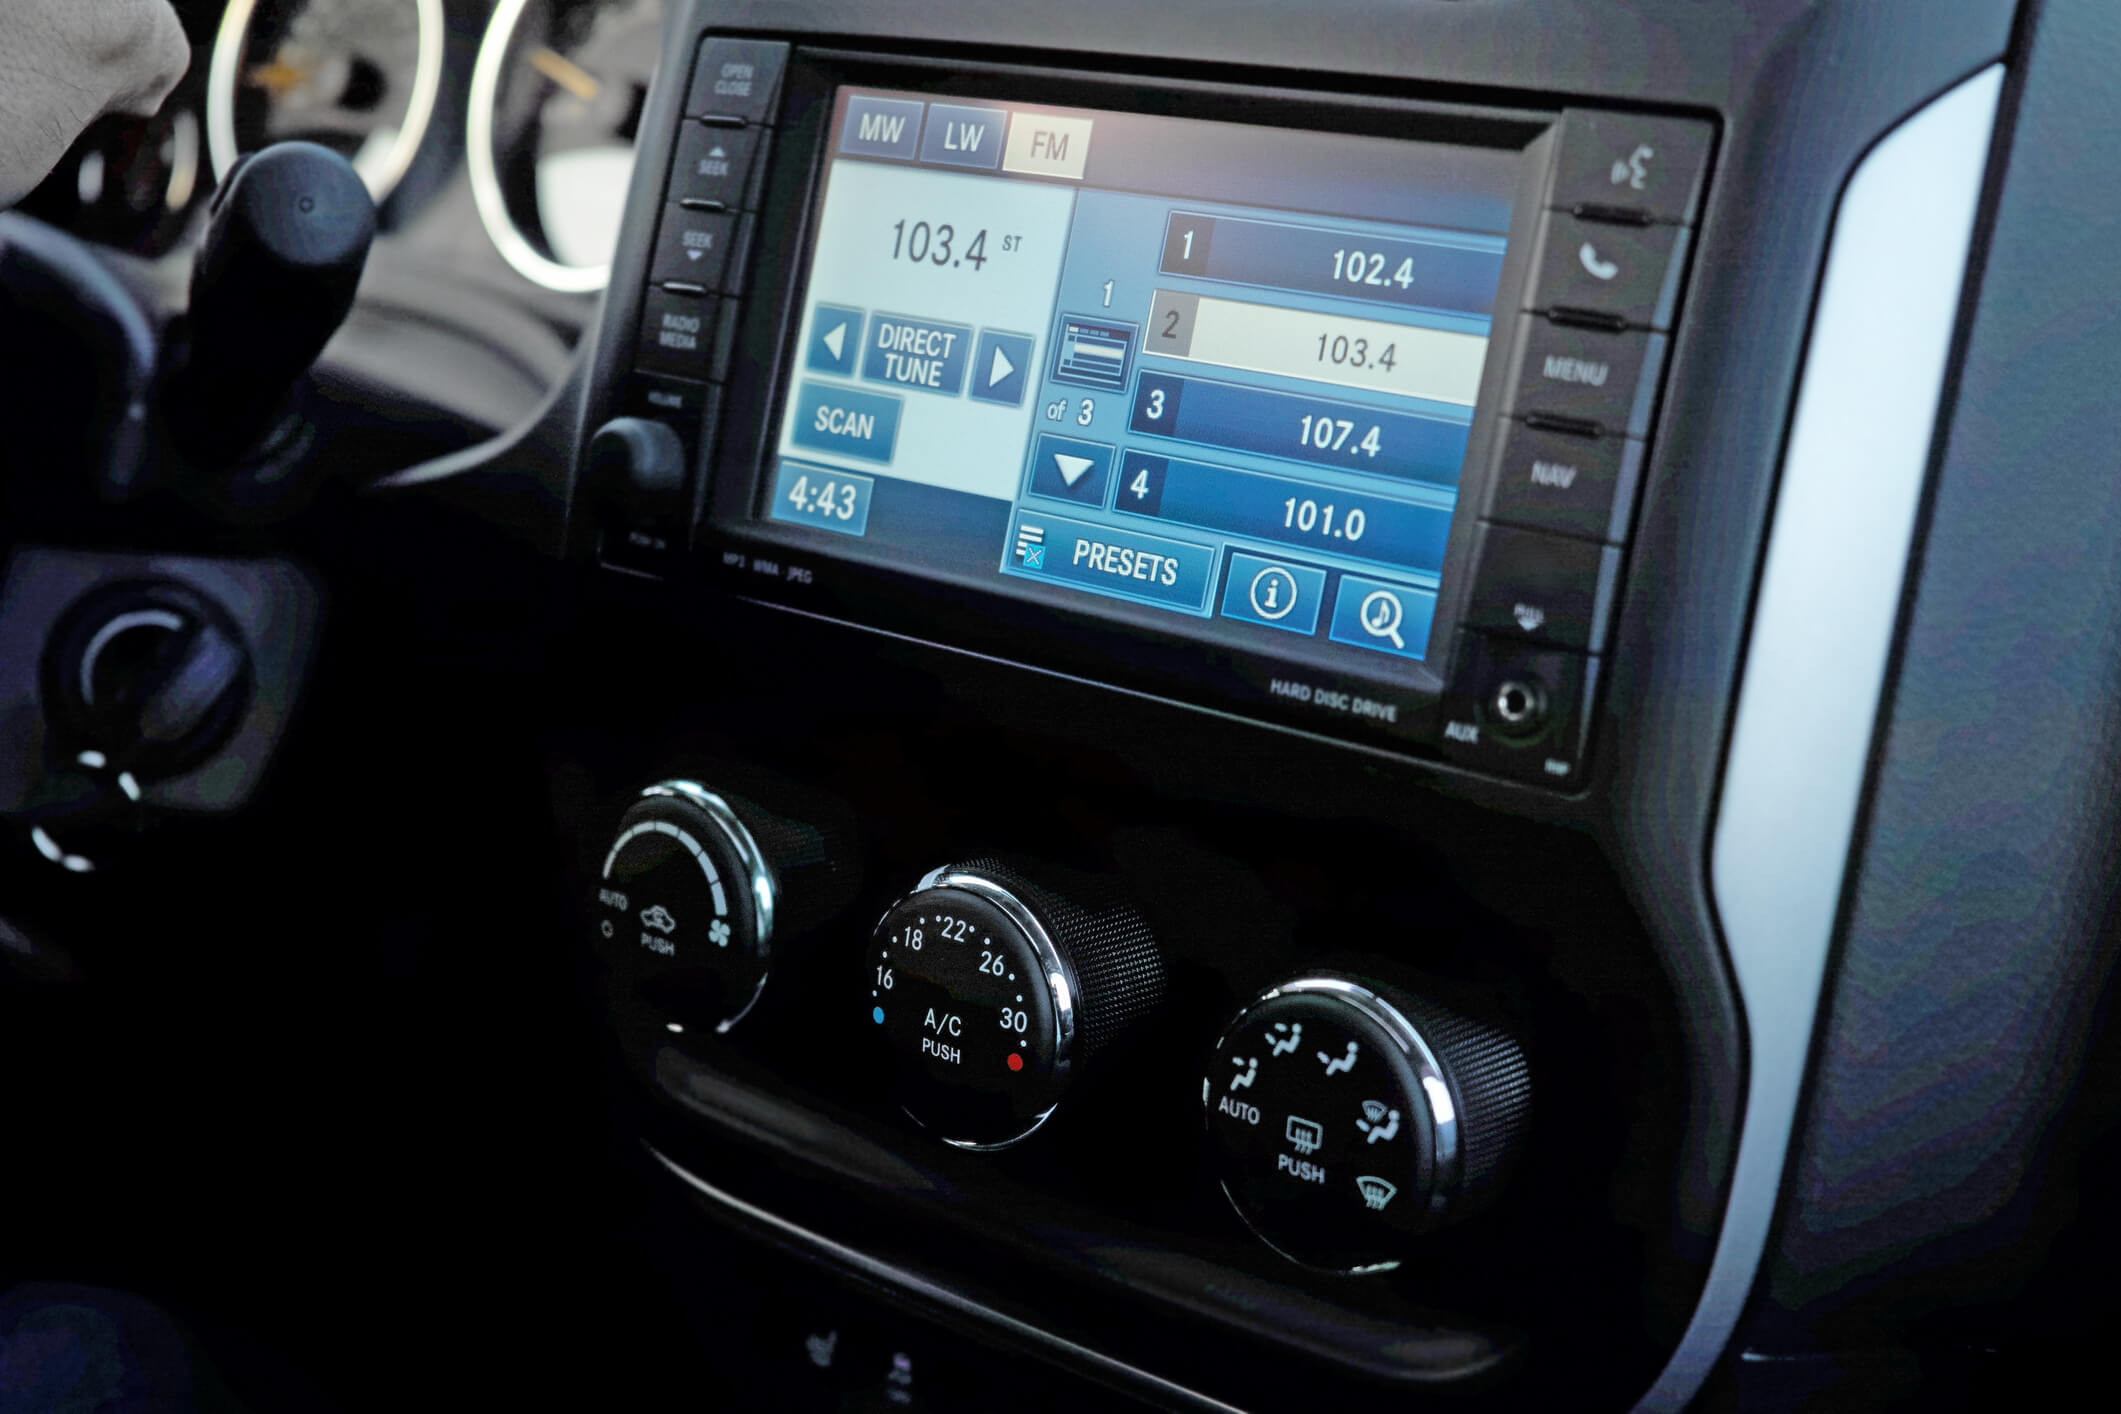 Car Stereo And Radio Autosound Solutions Inc South Sioux City Nd How To Installation A We Have Installed Many Unique Specialized Audio Systems That Are One Of Kind